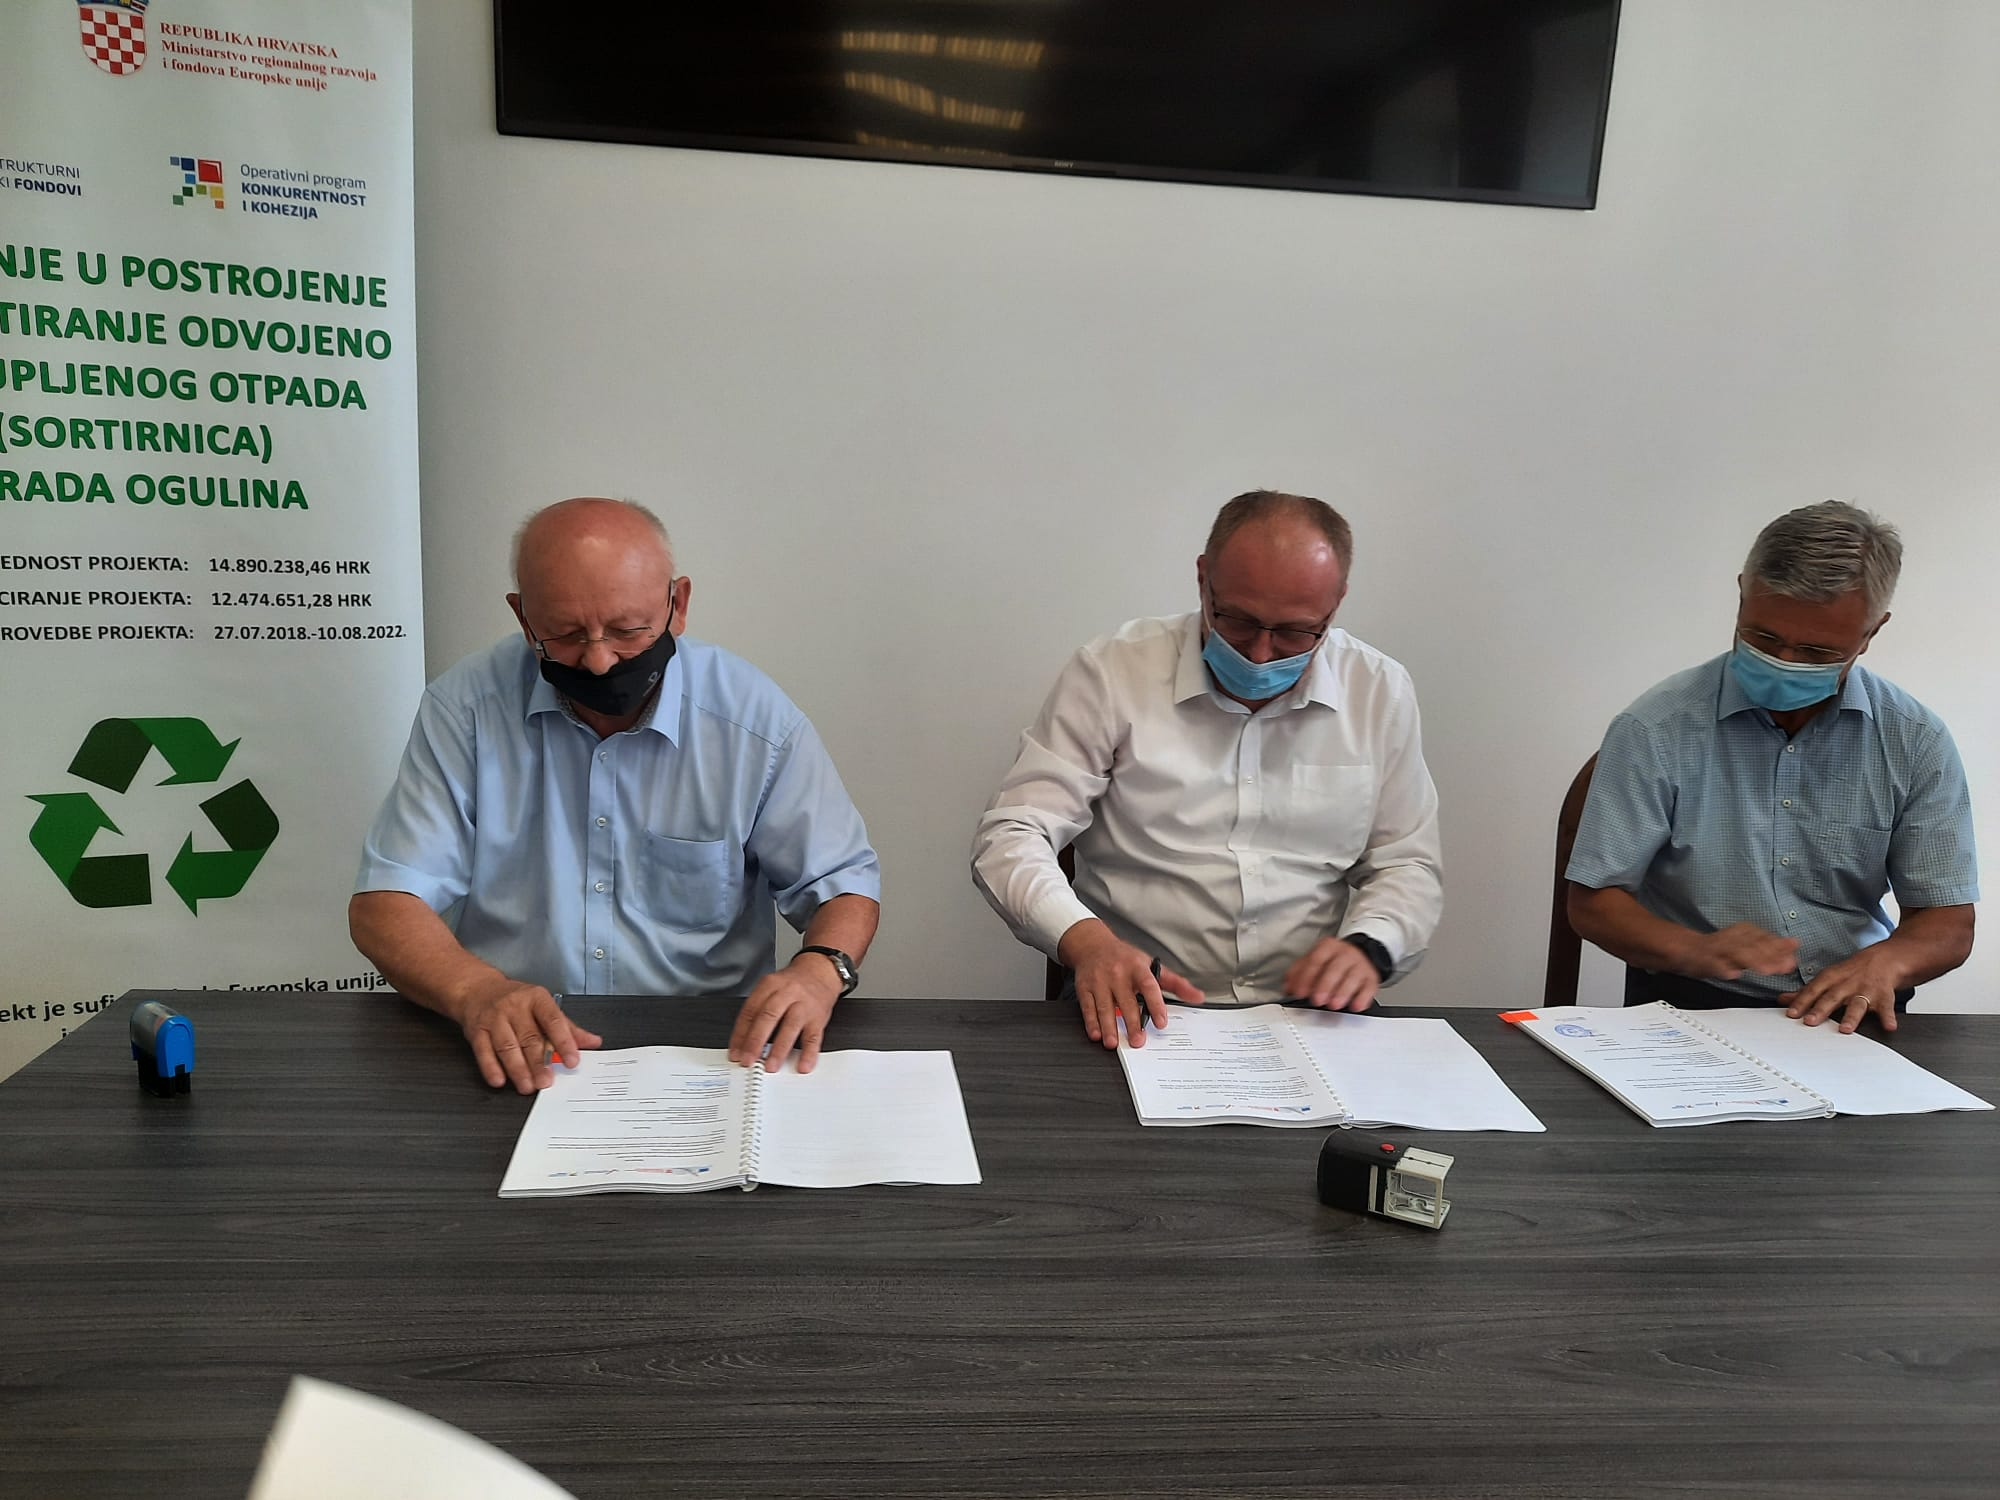 Contract Signed for Construction of Sorting Plant in Ogulin